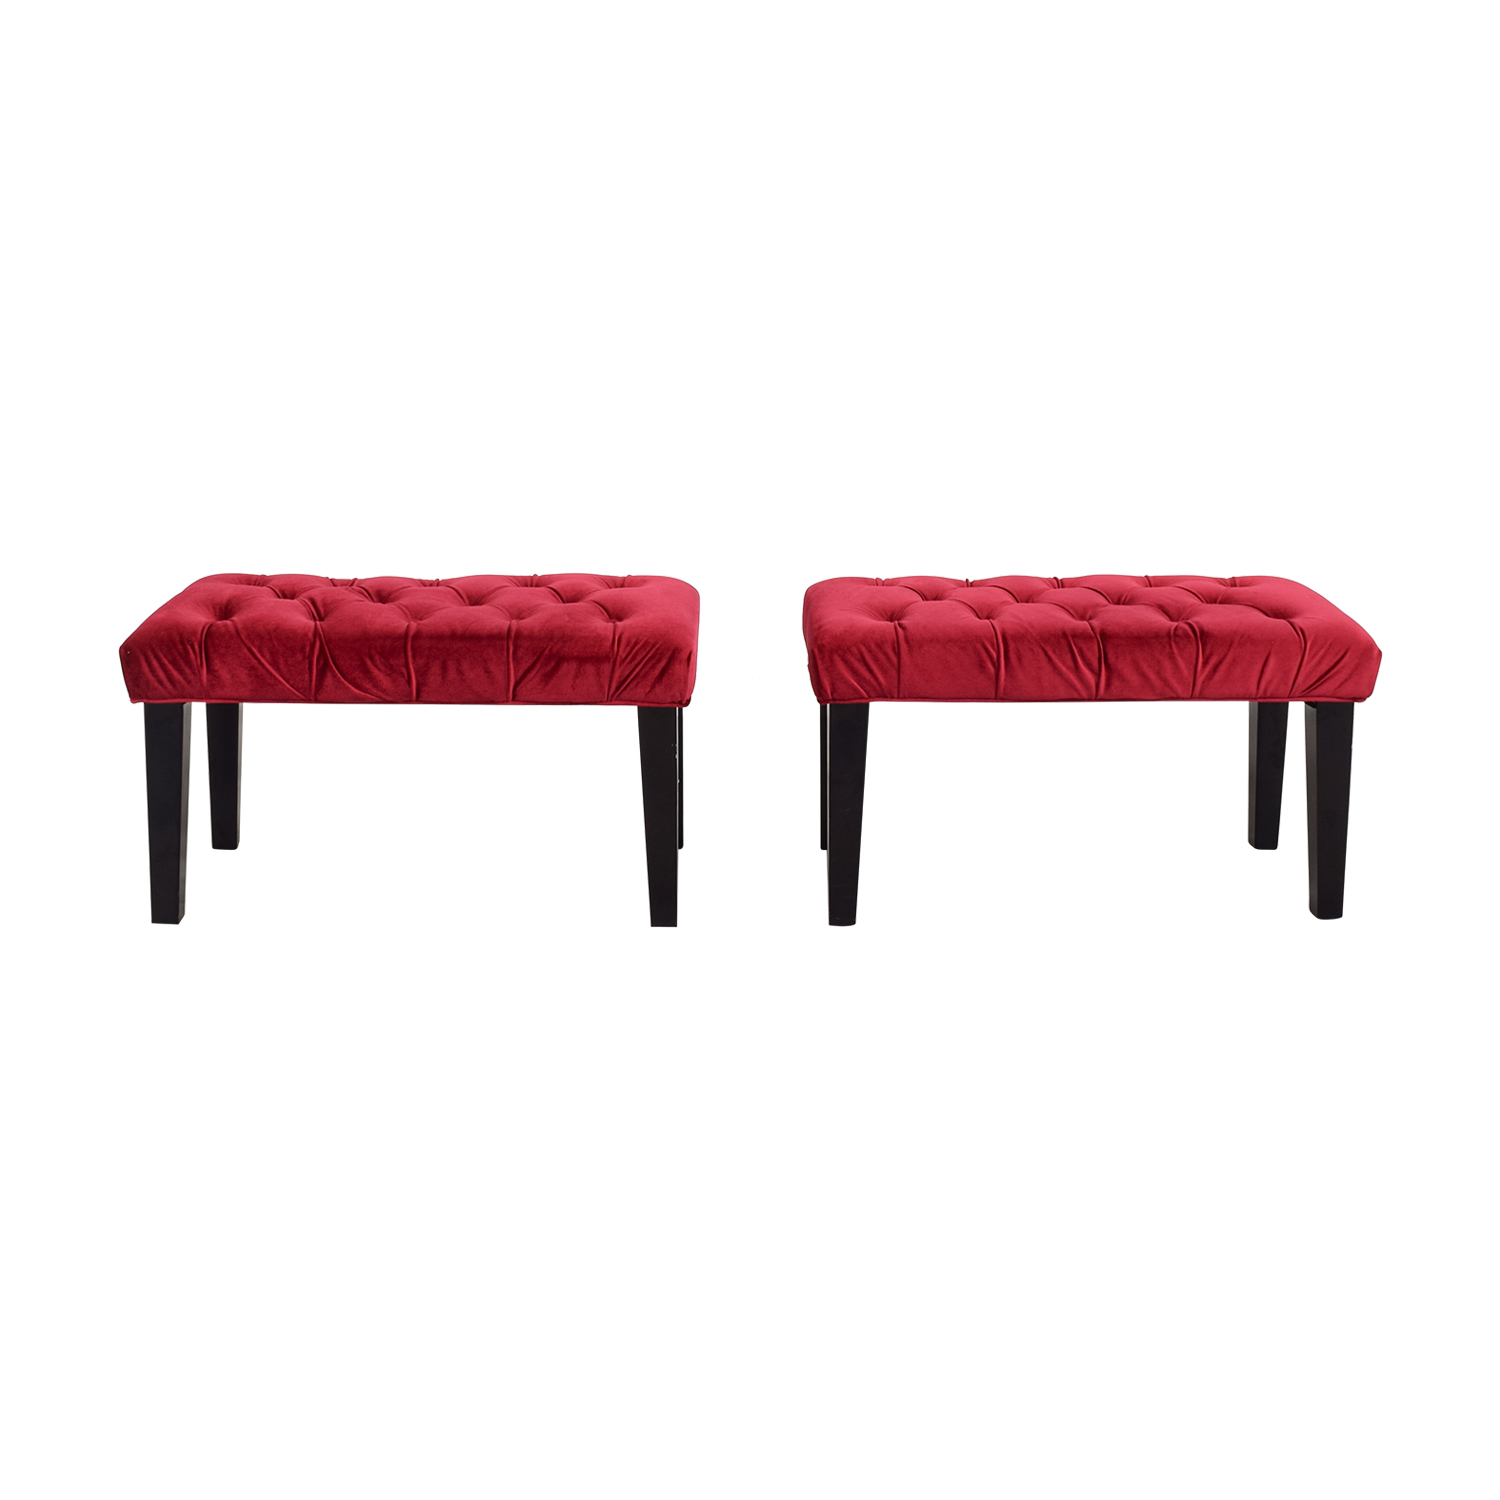 buy  Red Tufted Benches online